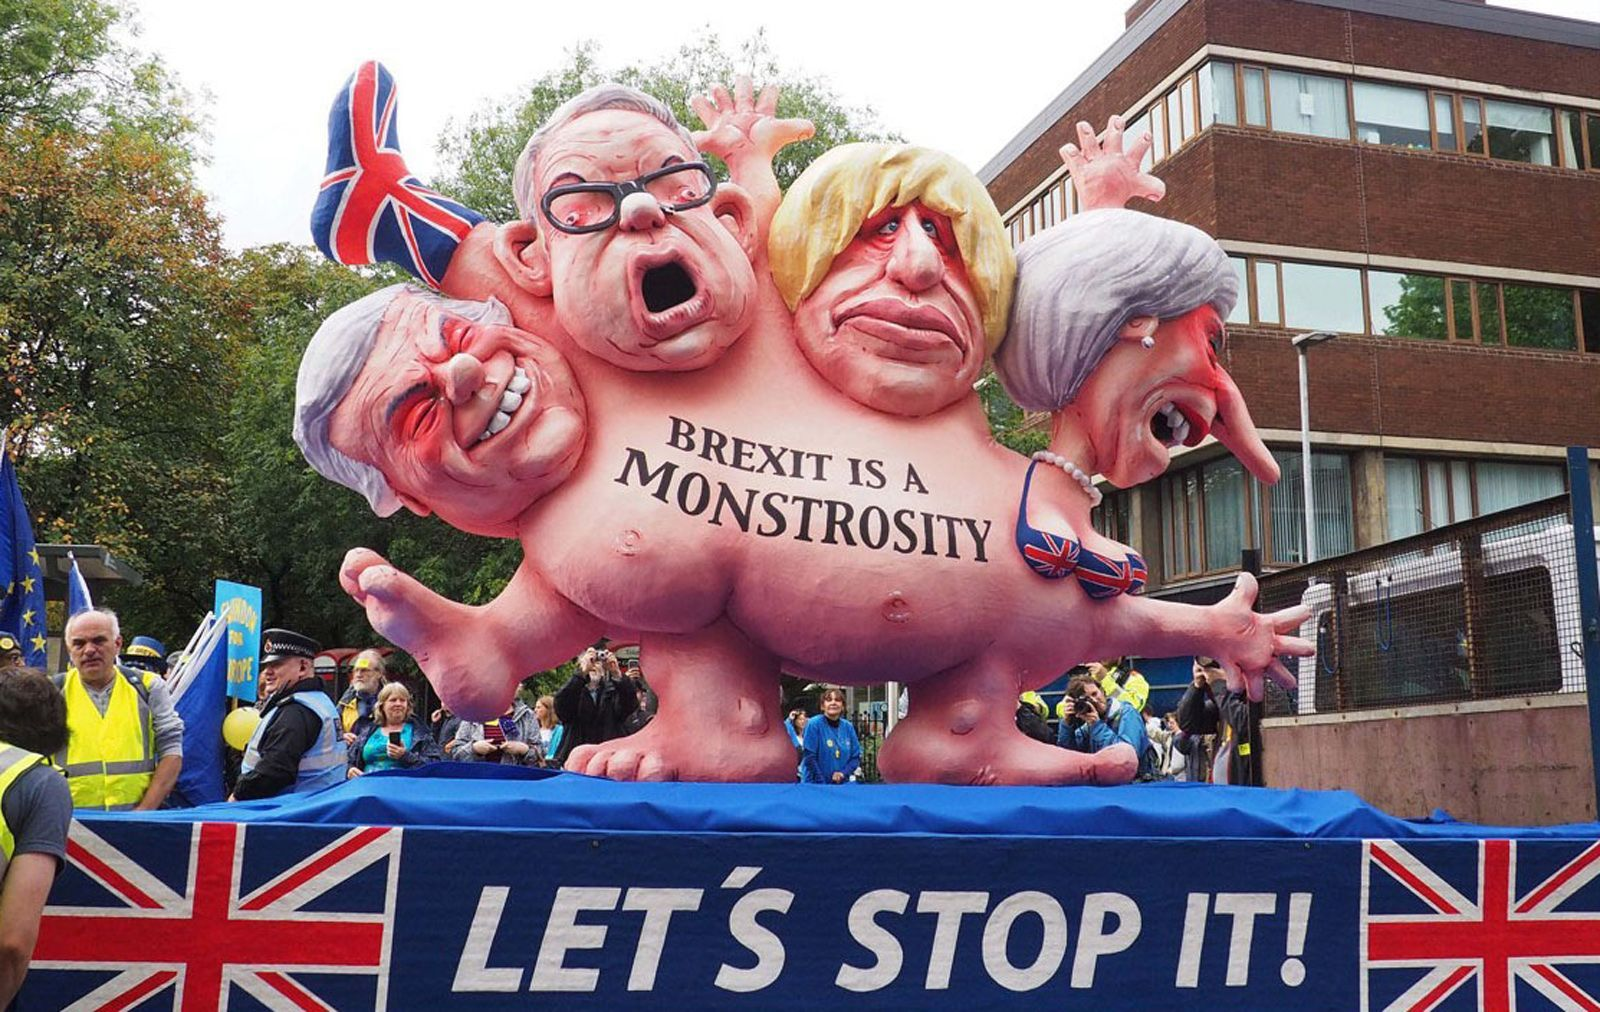 "Johnson has positioned as defendant of a hard Brexit if needed to deliver the exit from the UE on 31st November, despite this would make the social deepest divide between UK citicens in ages even deeper. On the image, At the front of a demonstation against Brexit in Manchester a float showed a multi-headed chimera with the faces of Theresa May and three leading Brexit campaigners: Foreign Secretary Boris Johnson, Environment Secretary Michael Gove and Brexit Secretary David Davis. It beared the inscription ""Brexit is a monstrosity"" - ""Let's stop it"". The float was made by Jacques Tilly and his team. The photo was taken by Robert Mandel, who lets using the photo for free under CC BY 4.0 from Wikimedia Commons"